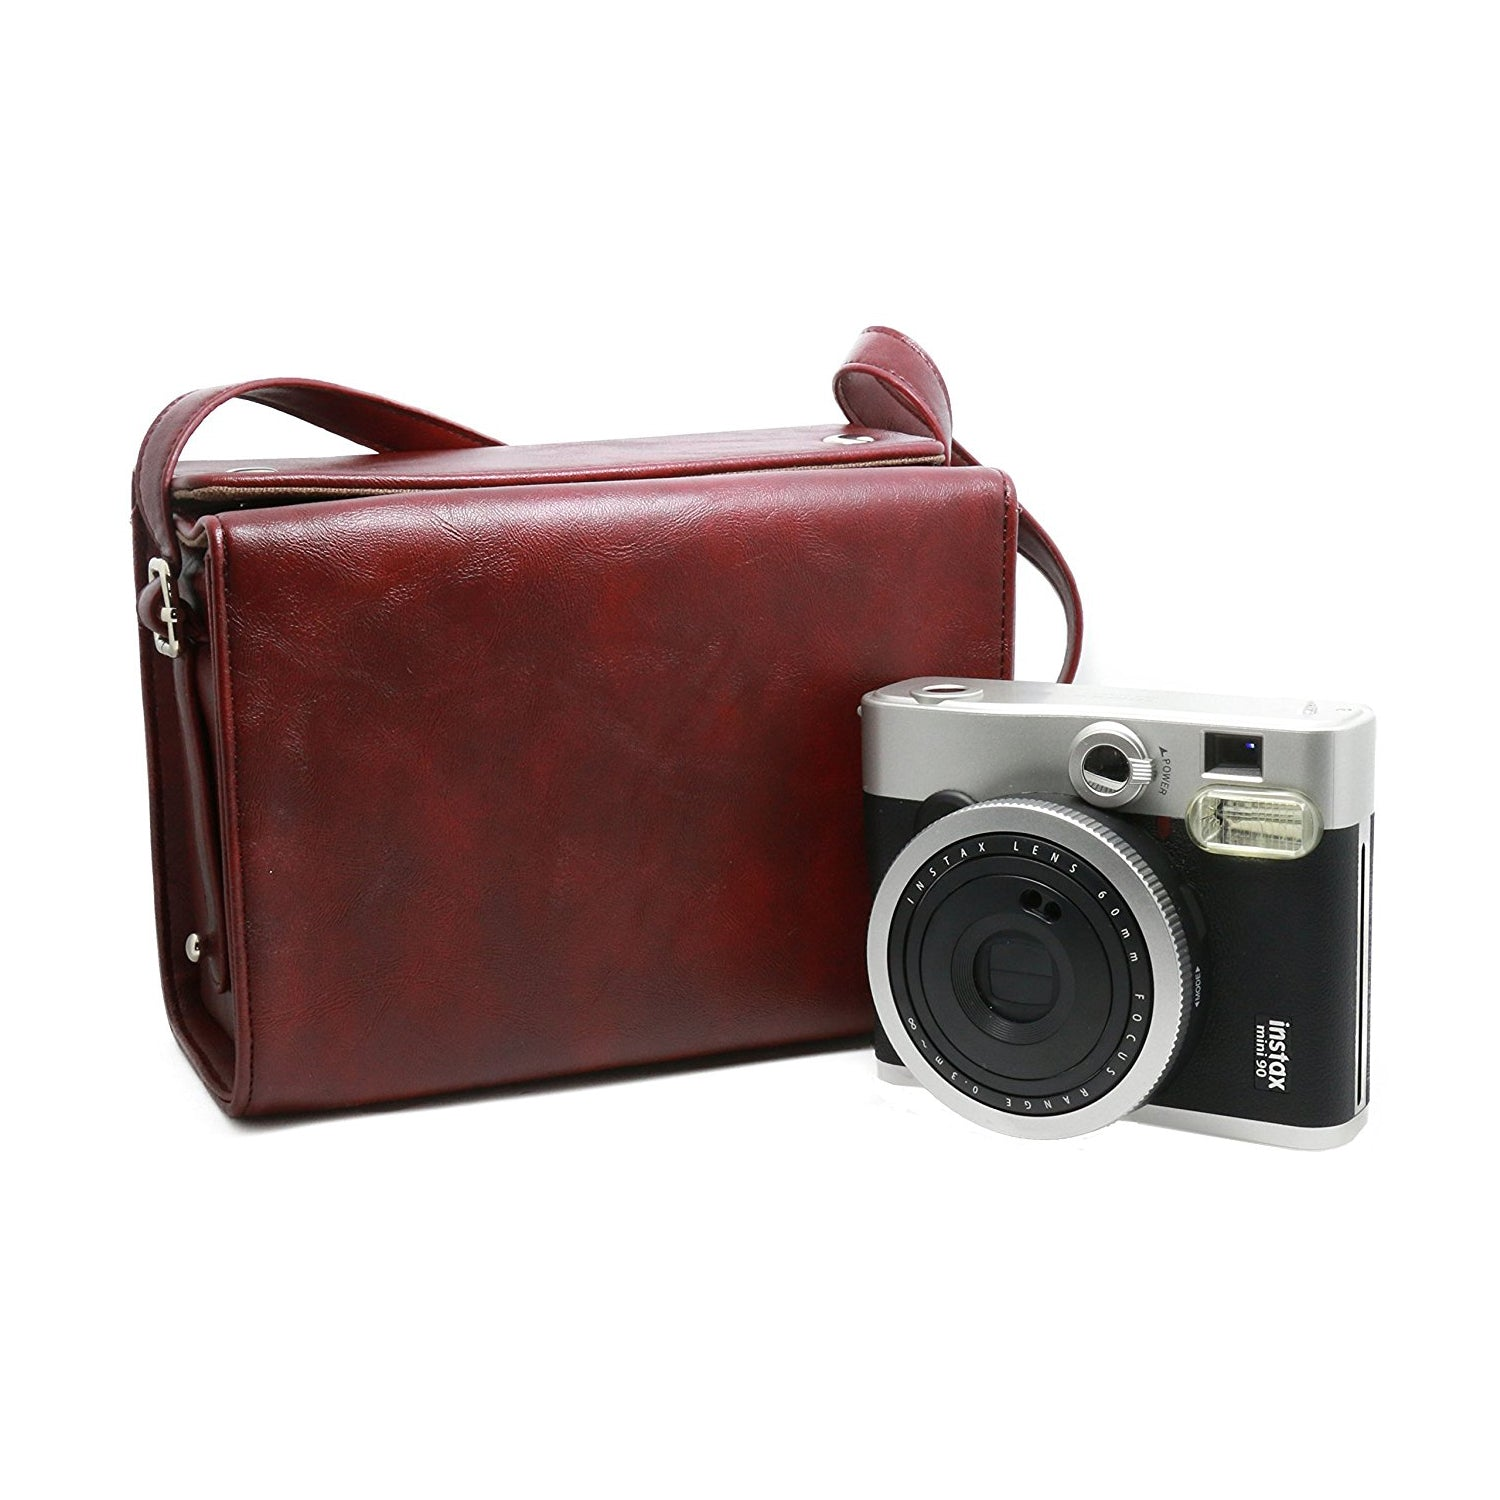 ZENKO MINI 7 8 25 50 90 INSTAX CAMERA BAG (RED WINE)